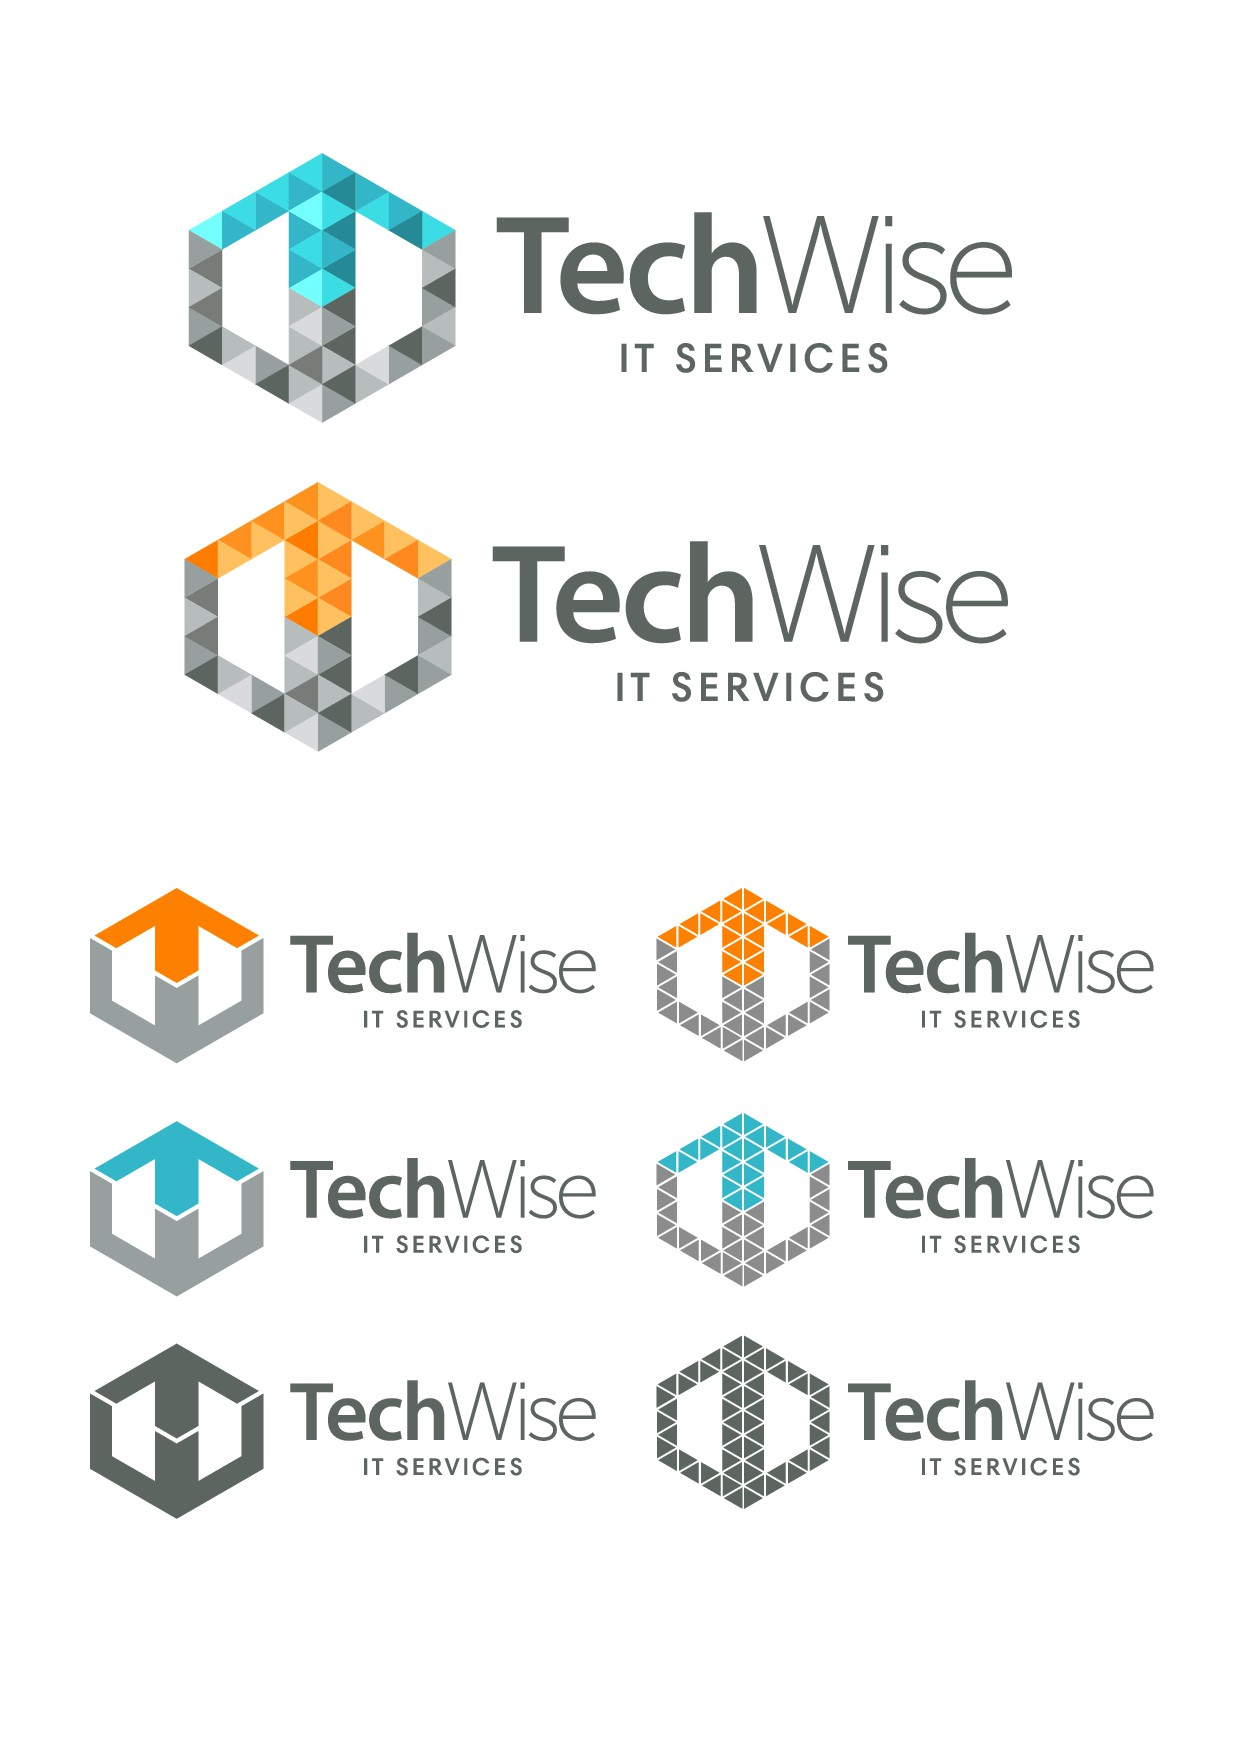 Mature IT Company searching for a new logo.